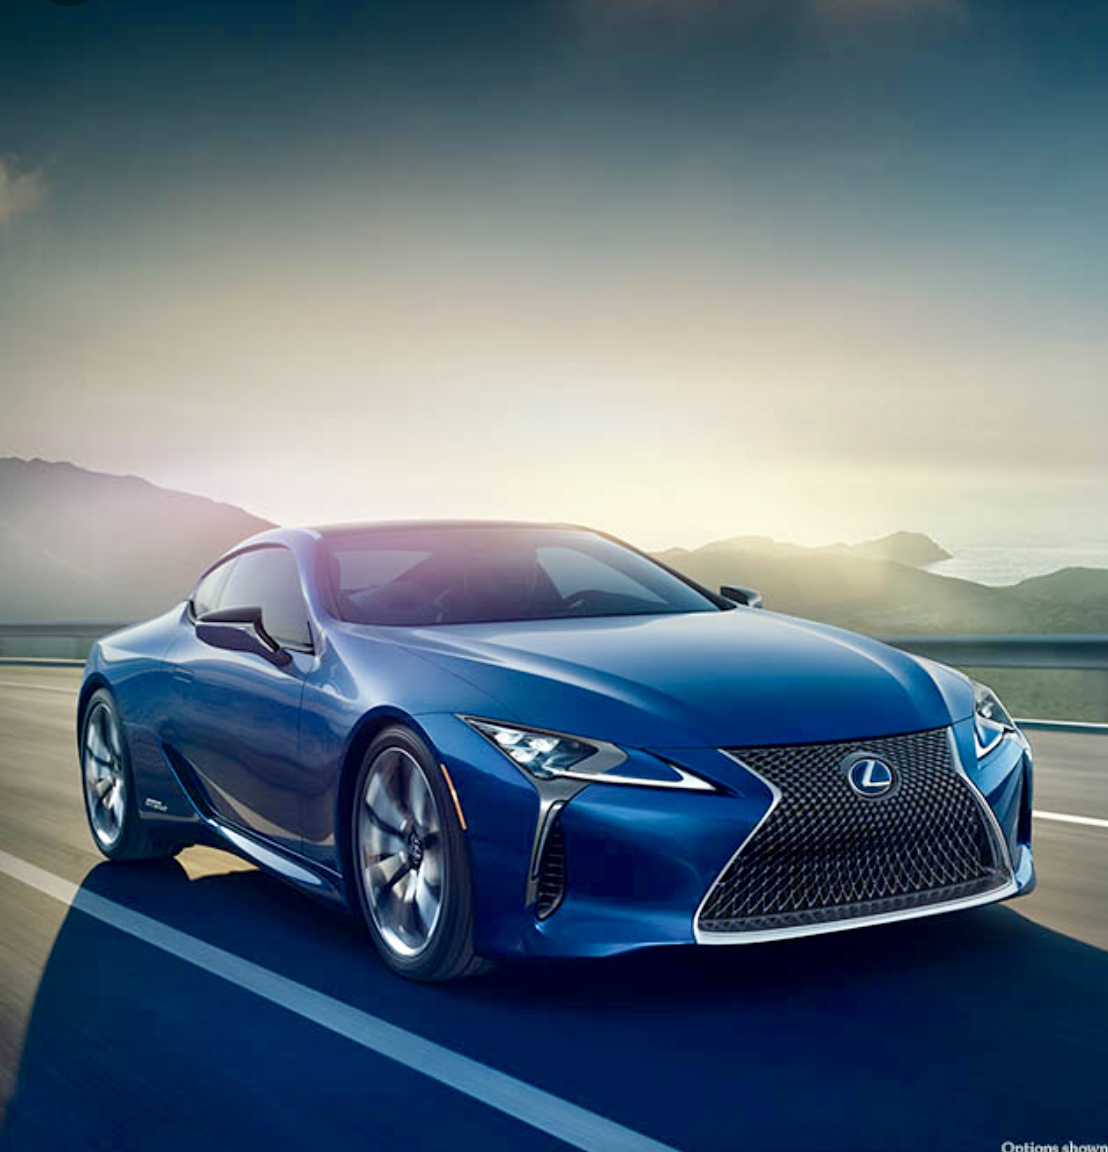 Lexus to attend Love Business EXPO 2020